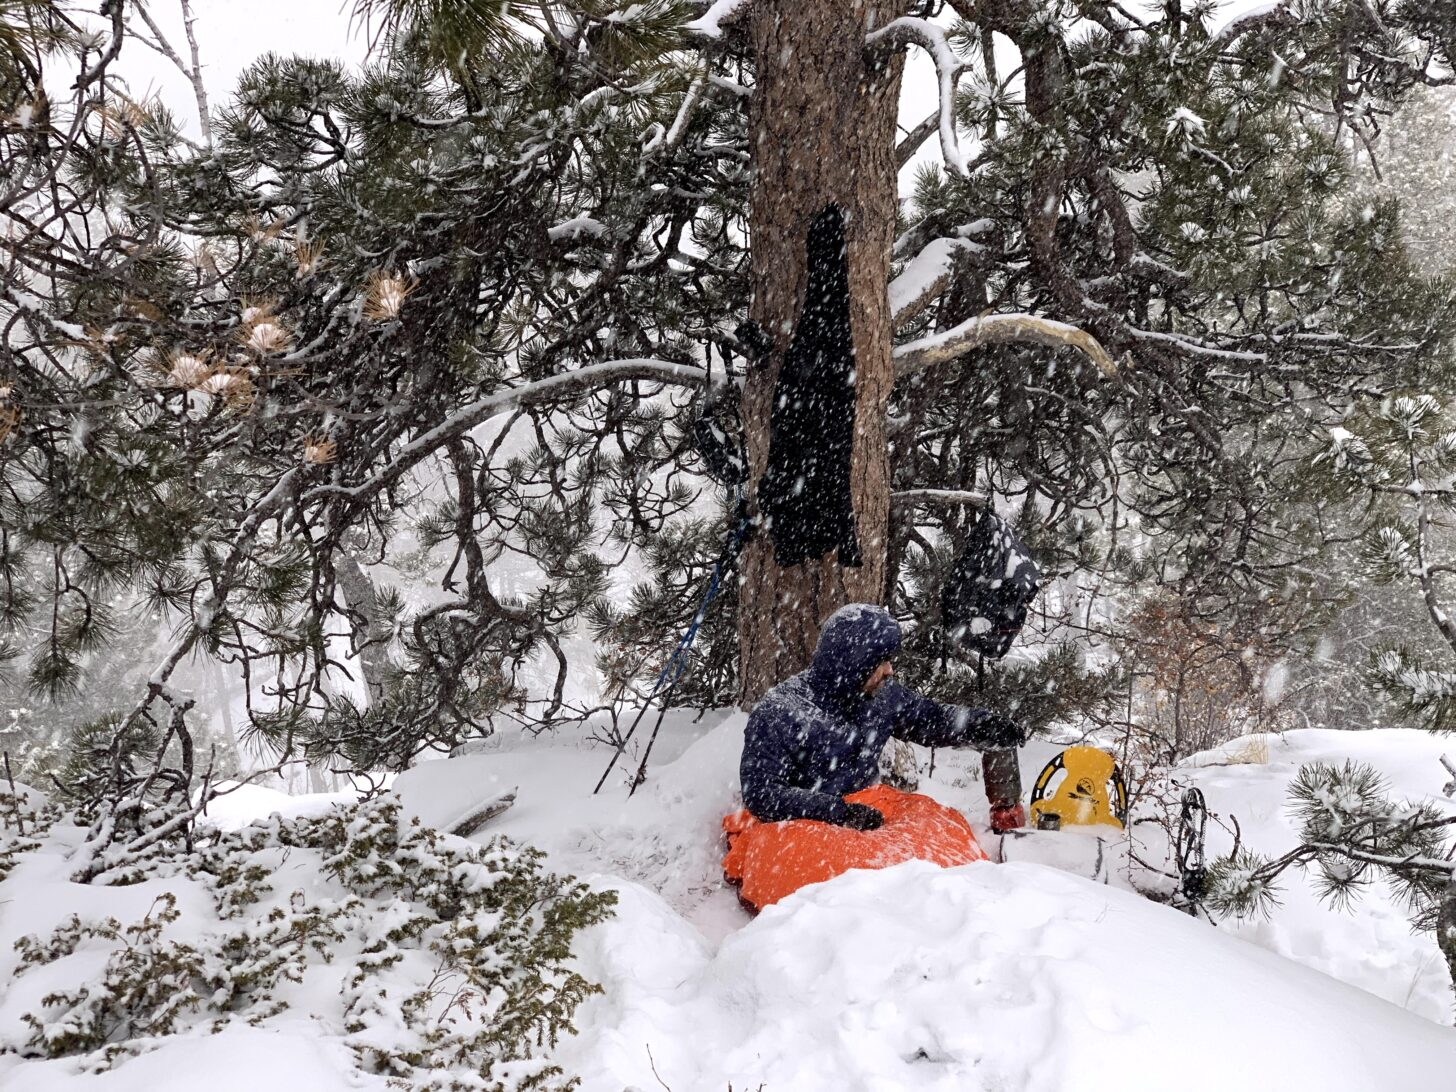 man in bivy sack during a snow storm